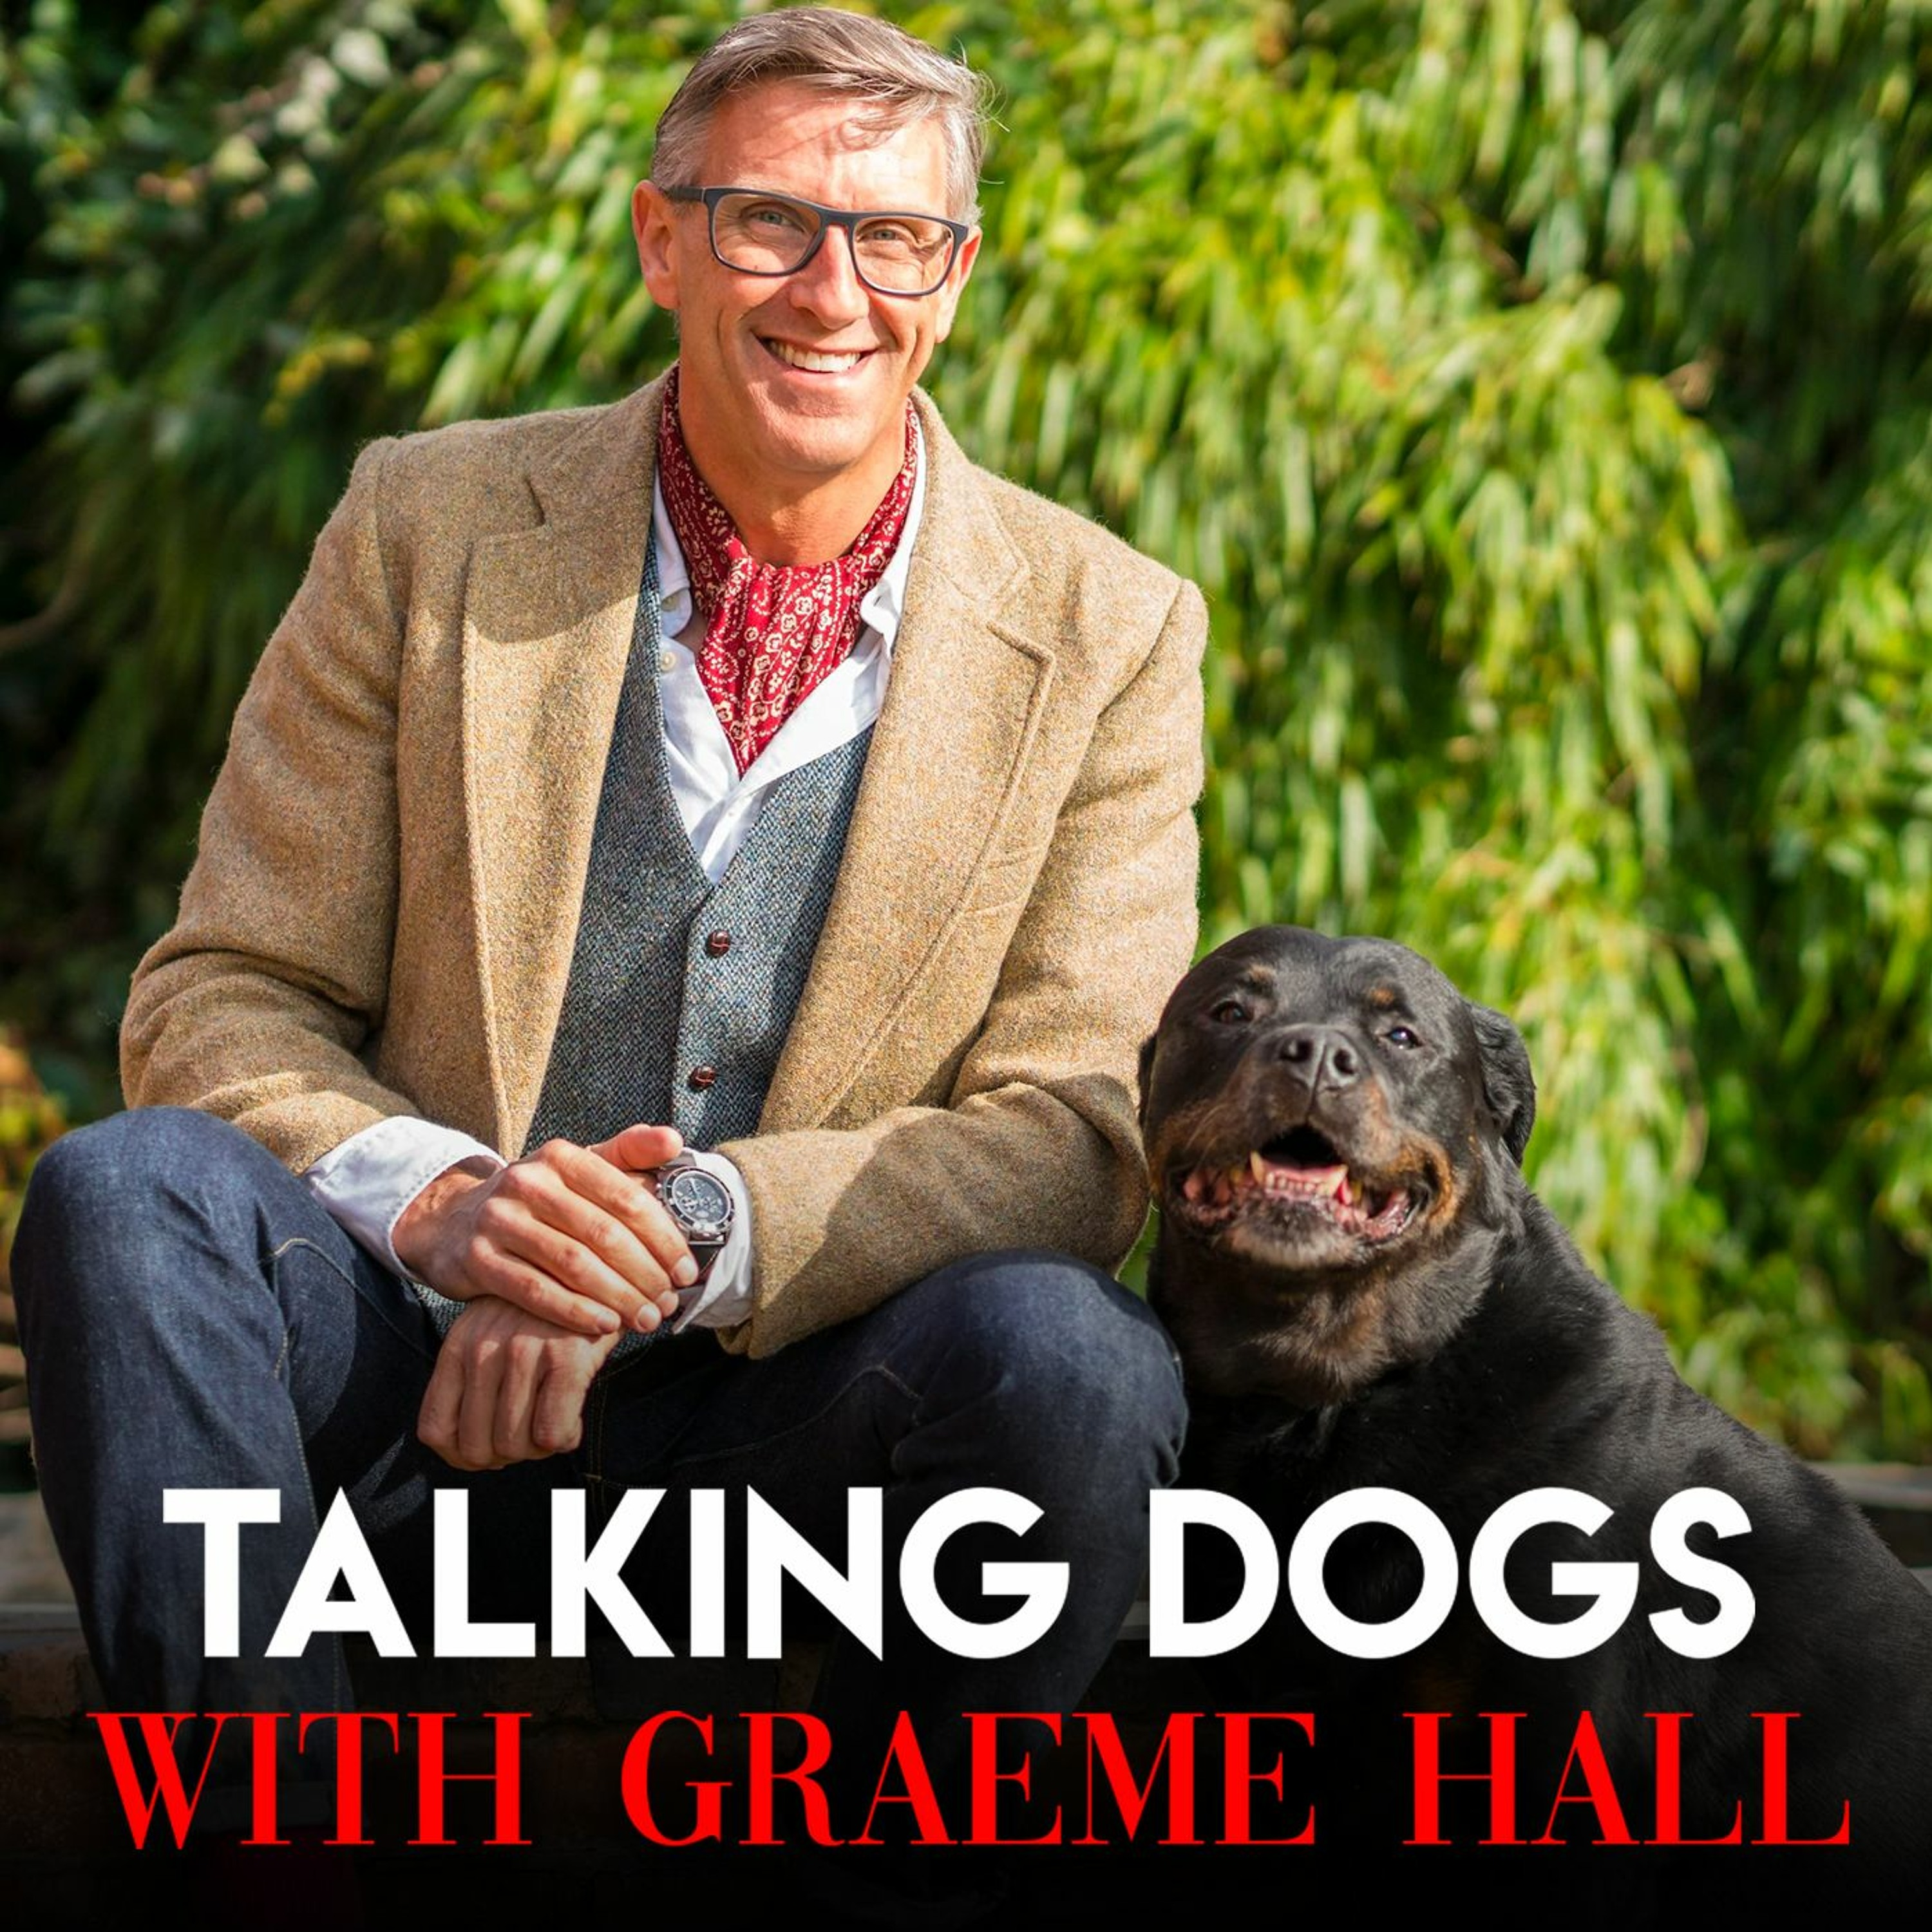 Talking Dogs with Graeme Hall Trailer